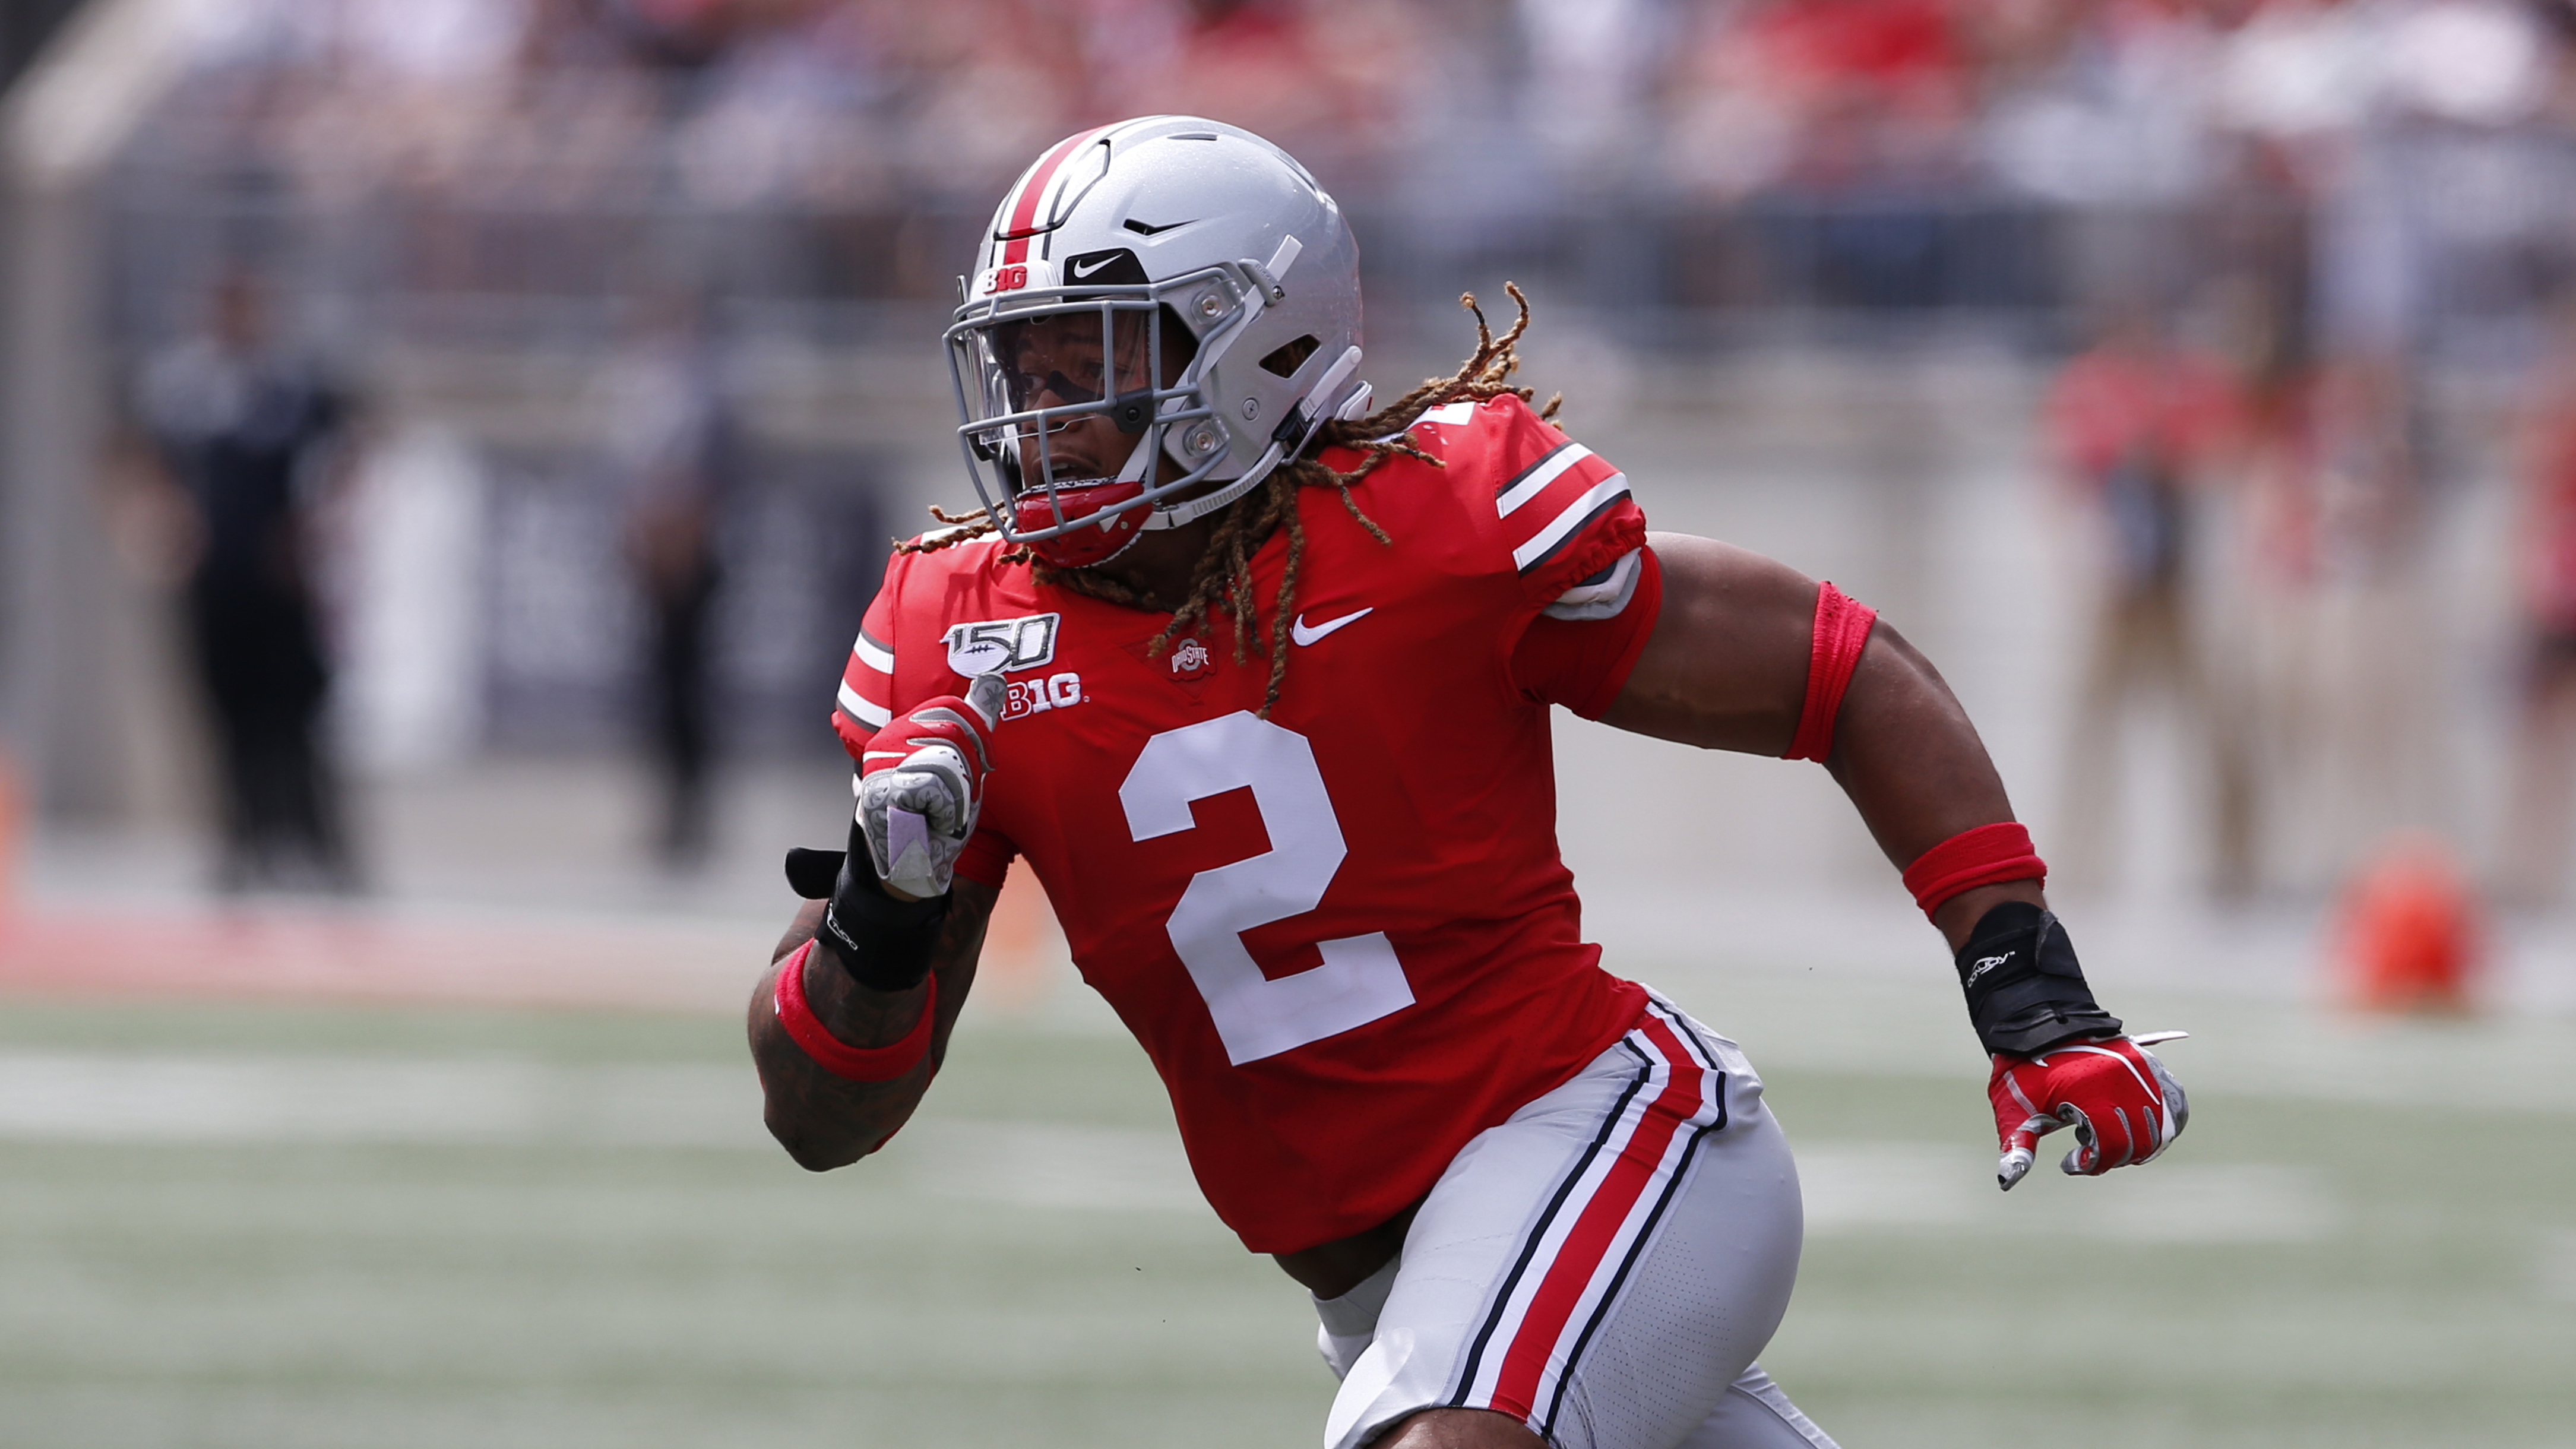 Ohio State Football Star Chase Young S Eligibility Issue Ncaa Bylaws And Precedent Cleveland Com